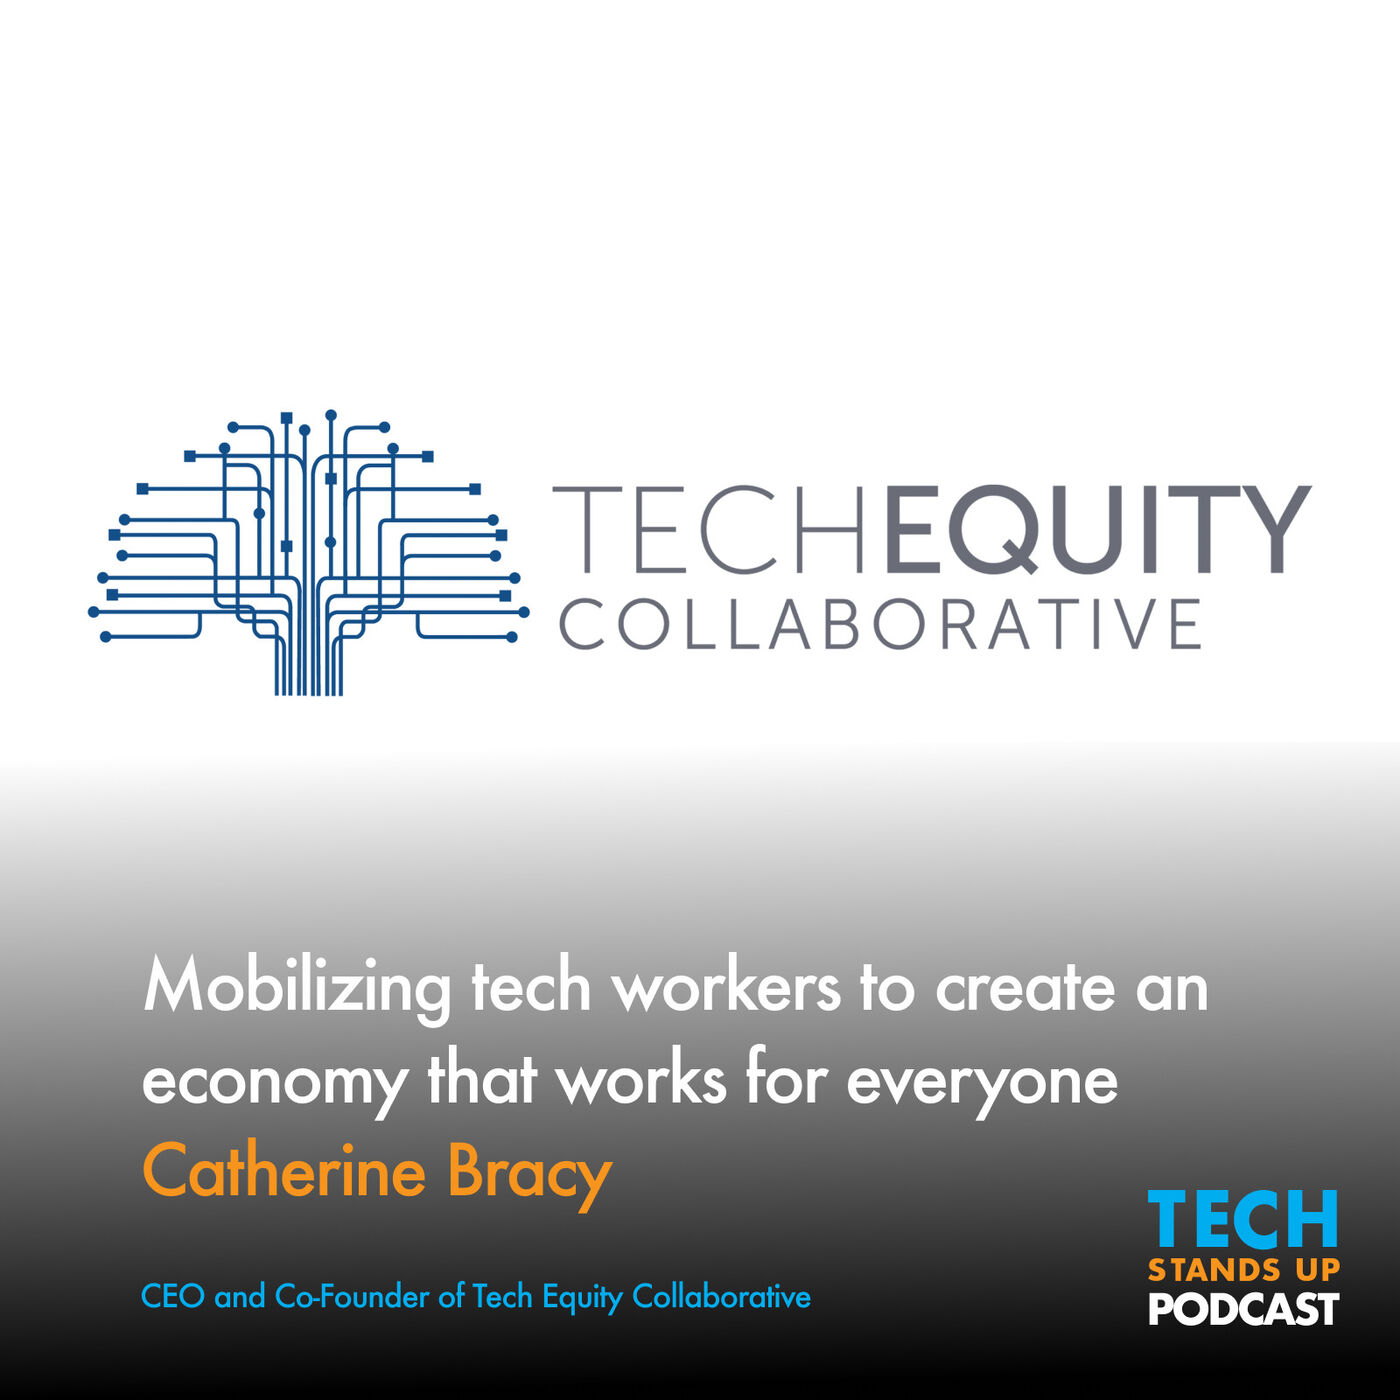 Catherine Bracy: Mobilizing tech workers to create an economy that works for everyone